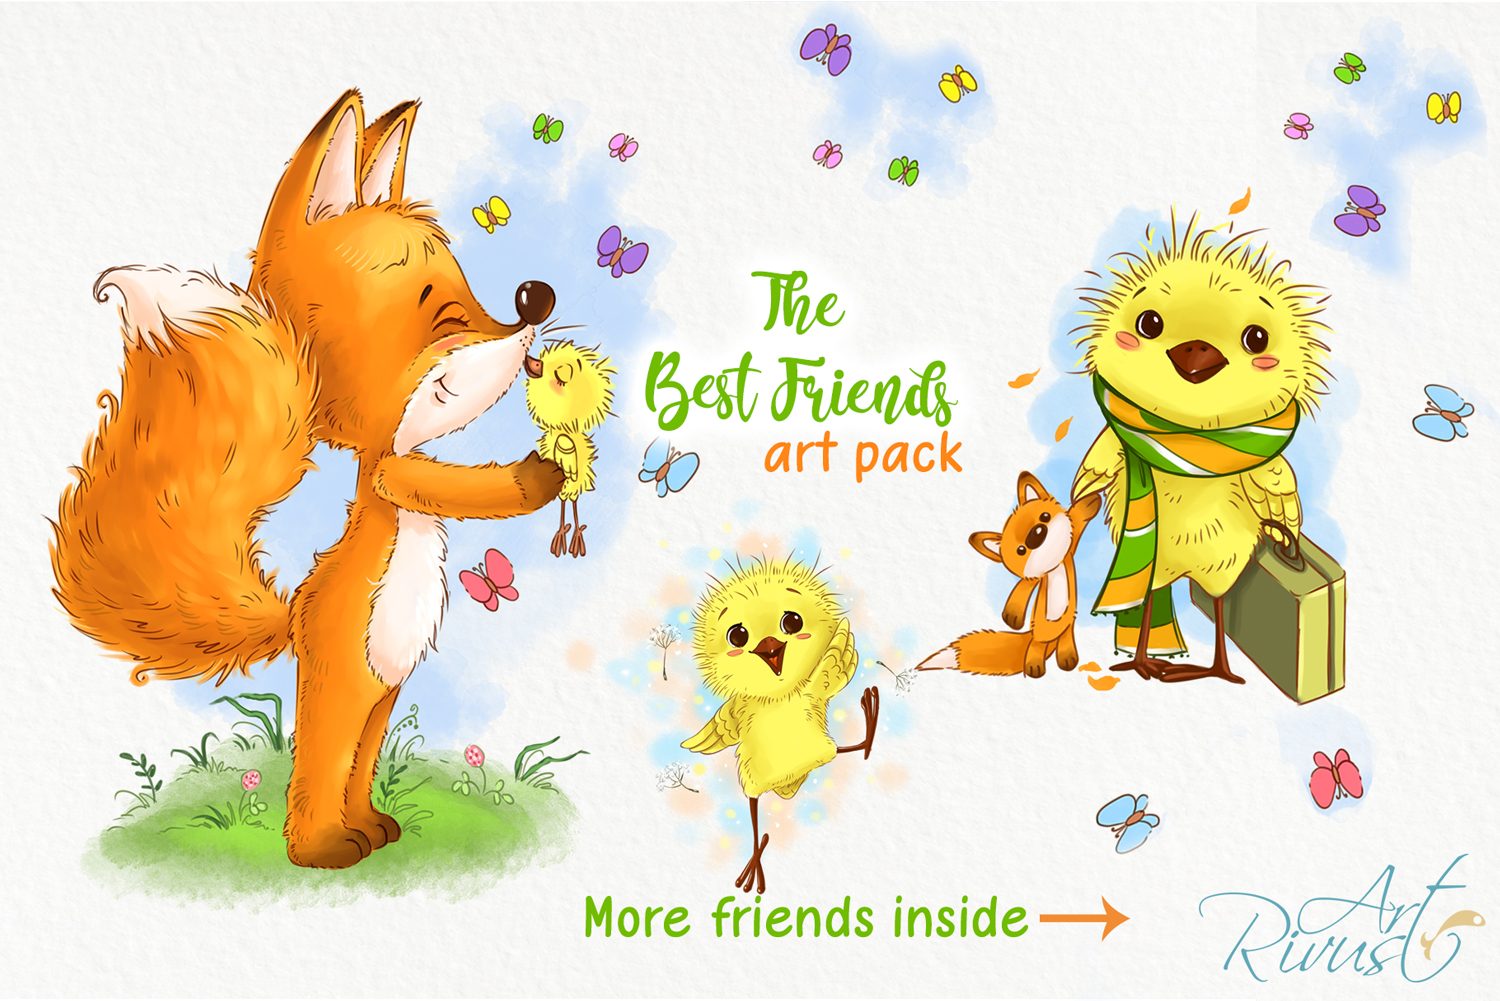 Fox and chick PNG clipart. The best friend graphic art. example image 2